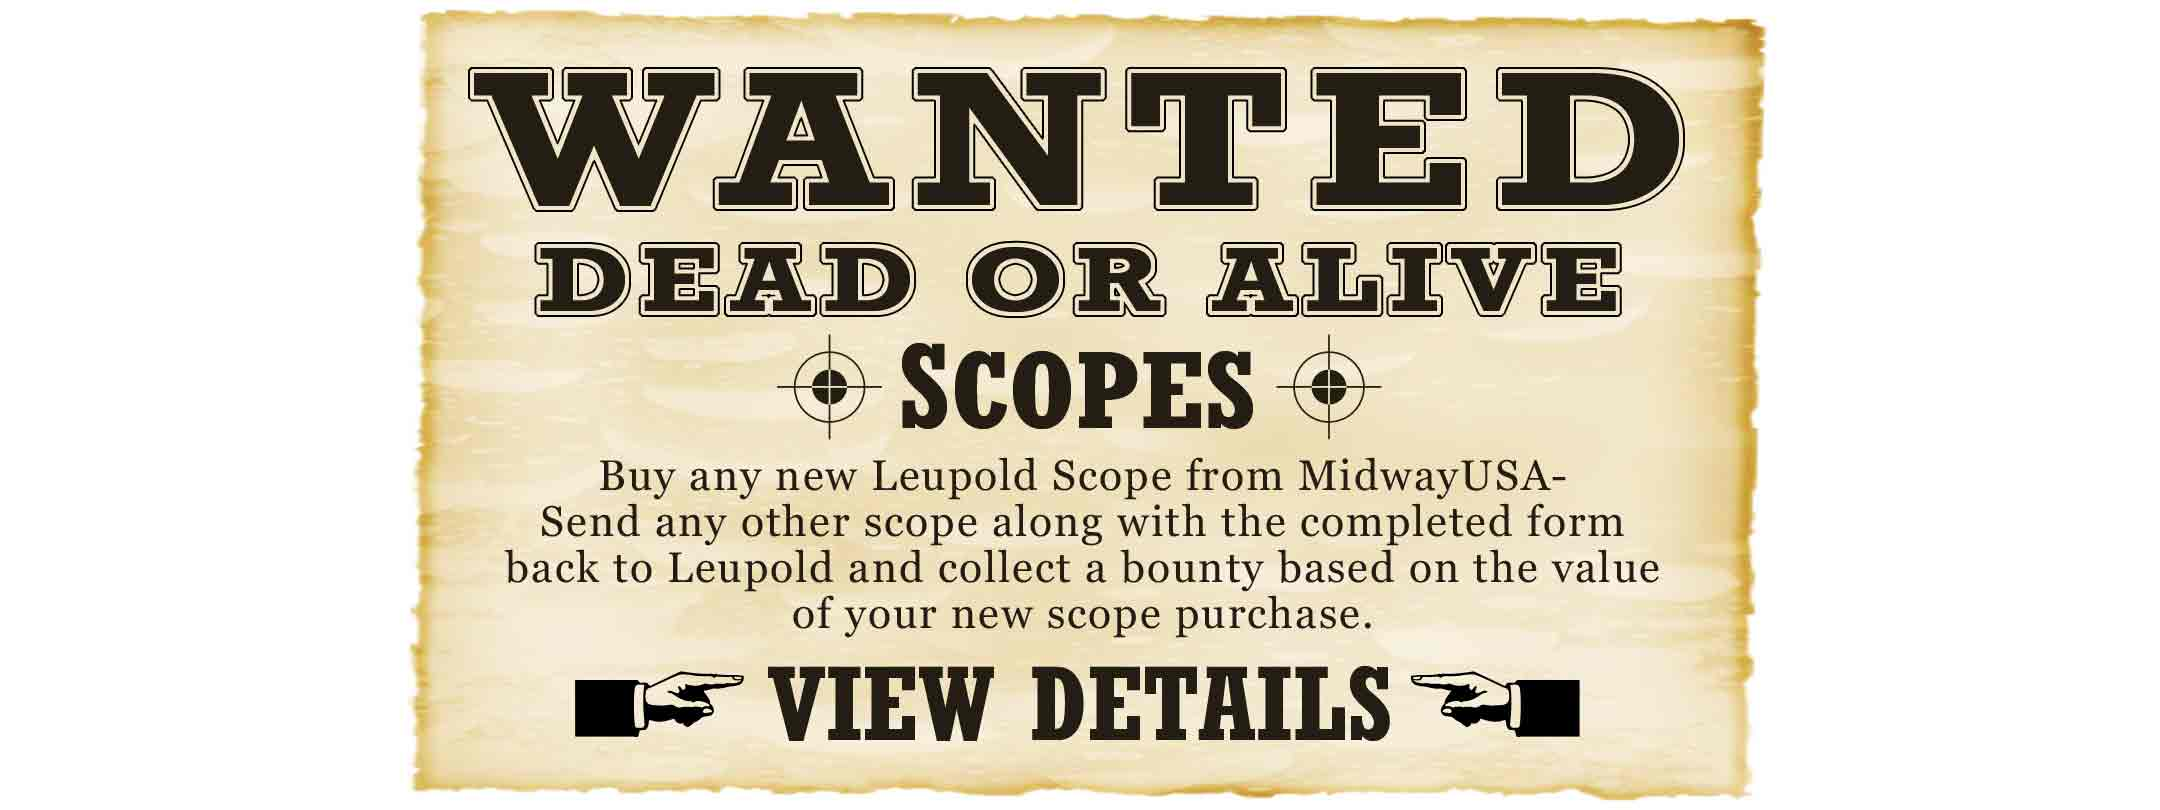 Leupold Wanted Dead or Alive